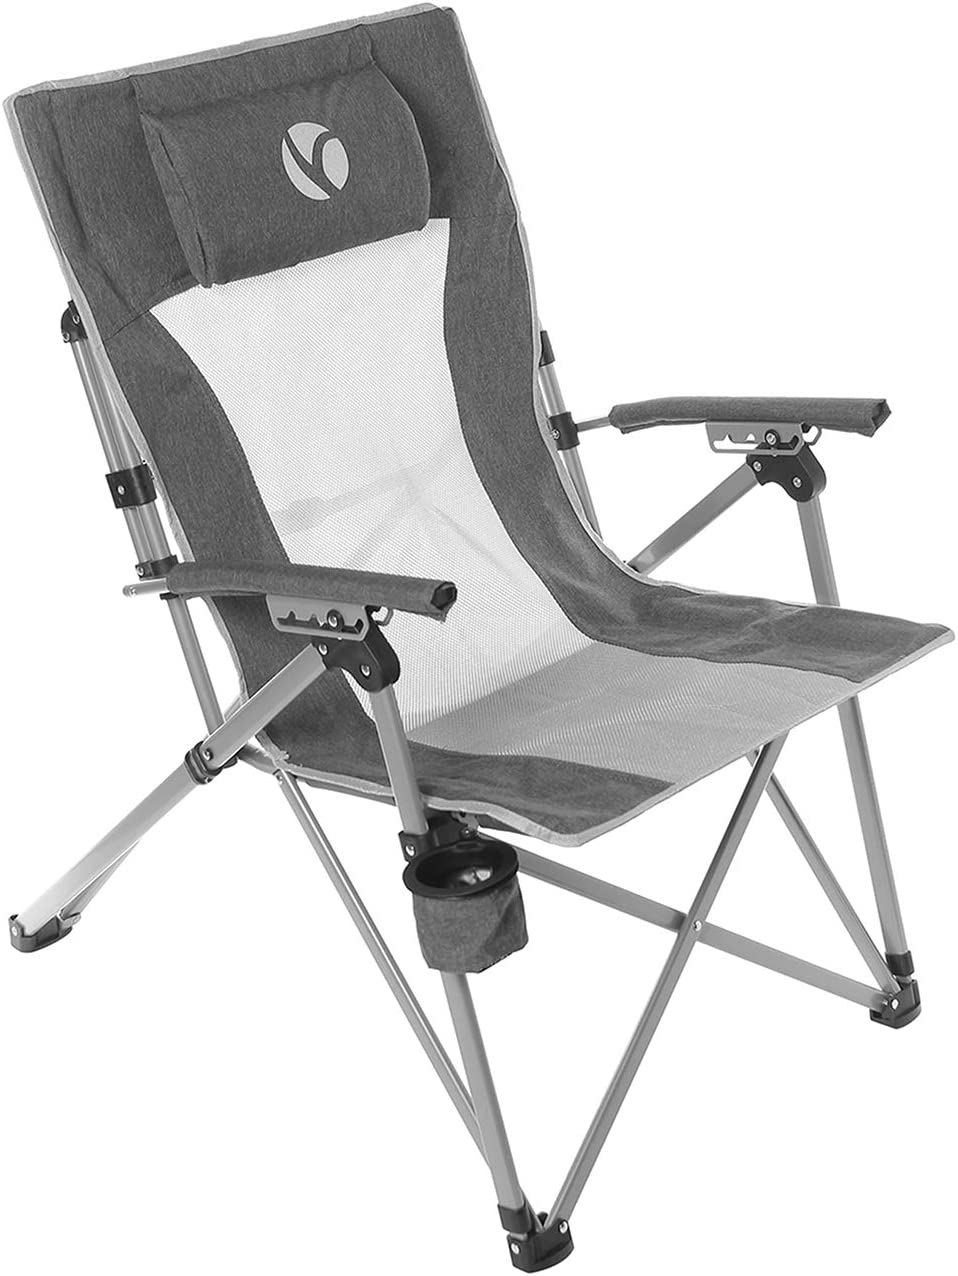 Rock Cloud Charlotte Mall Folding Camping Chair Max 84% OFF Portable Chairs Position Camp 4